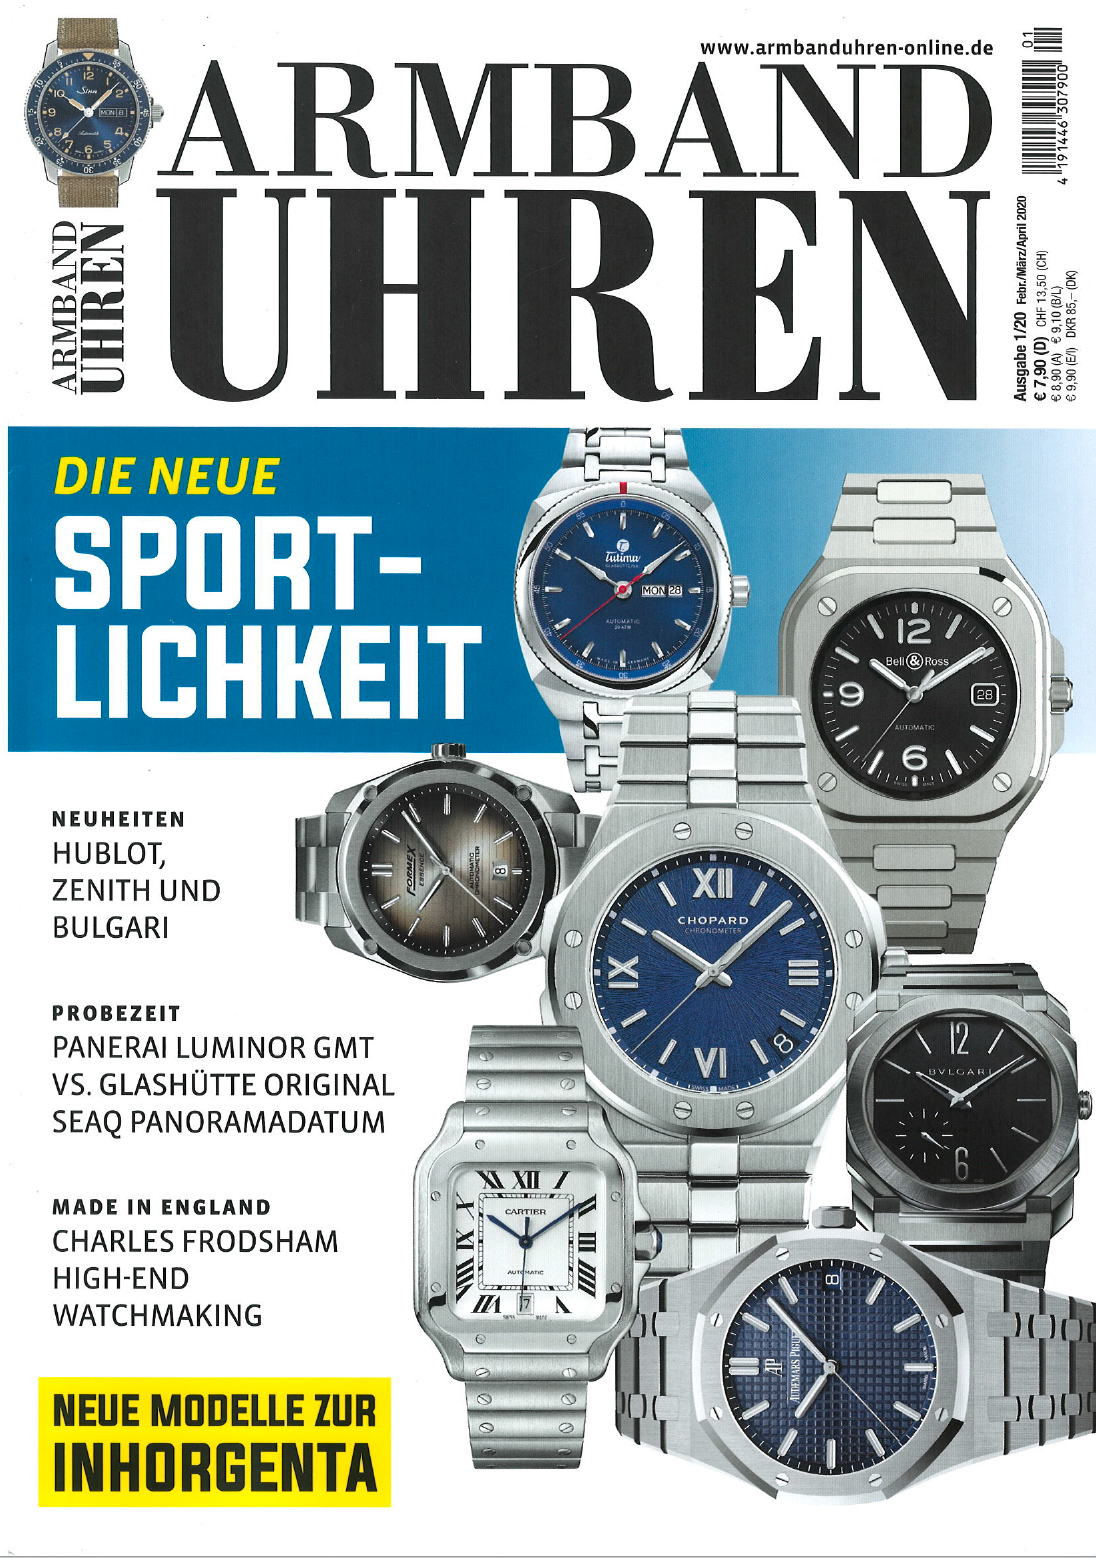 ARMBAND UHREN Formex Essence Automatic Chronometer Dégradé